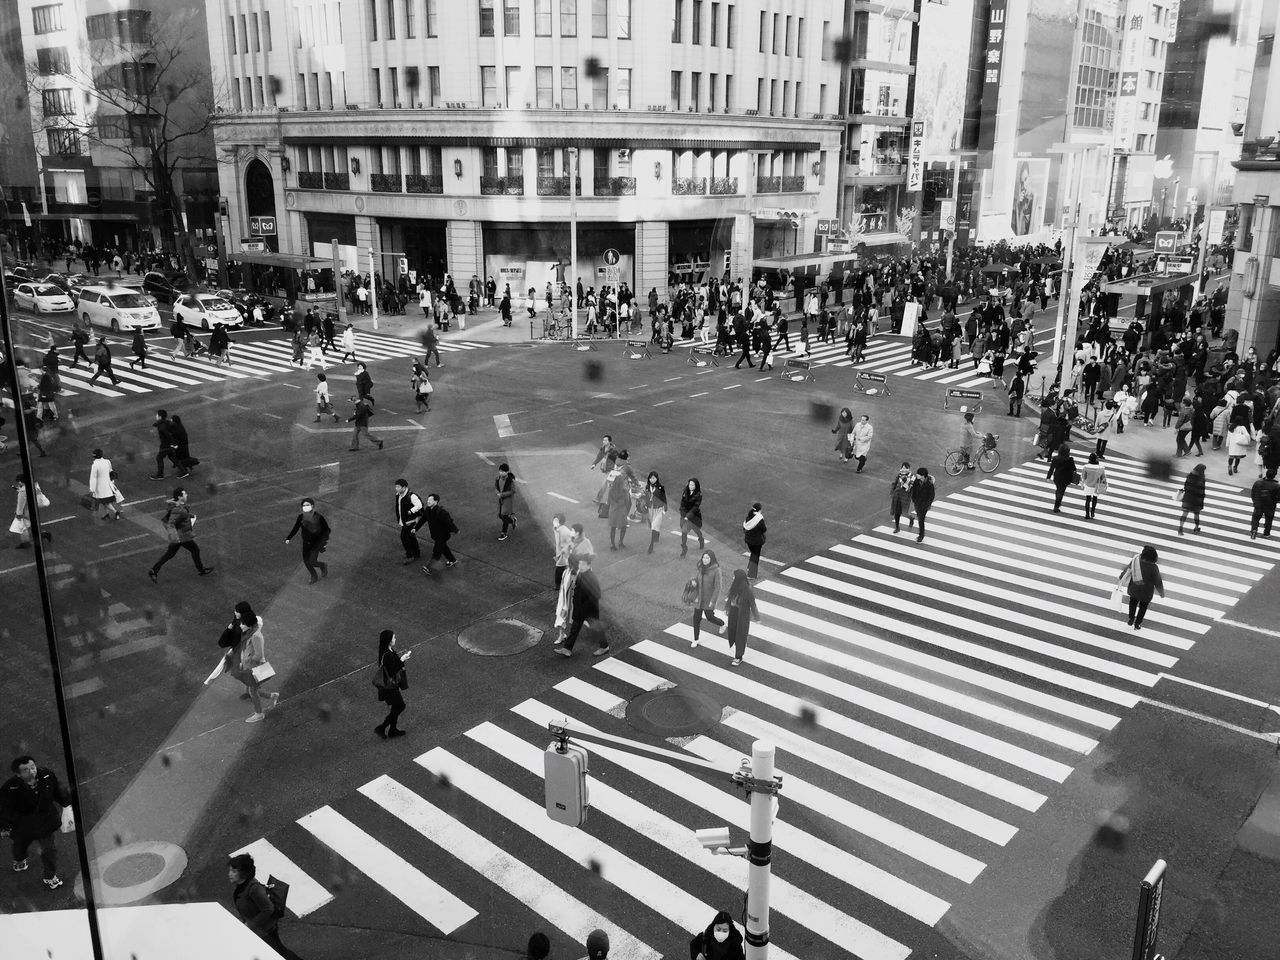 Busy weekend Large Group Of People Real People High Angle View Building Exterior Men Women Walking Day City Outdoors Built Structure Architecture People Adult Weekend Activities Weekend Crossing The Street Blackandwhite Photography Street Photography Famous Place Metropolitan Ginza Tokyo Japan Ginza Walk Lifestyles